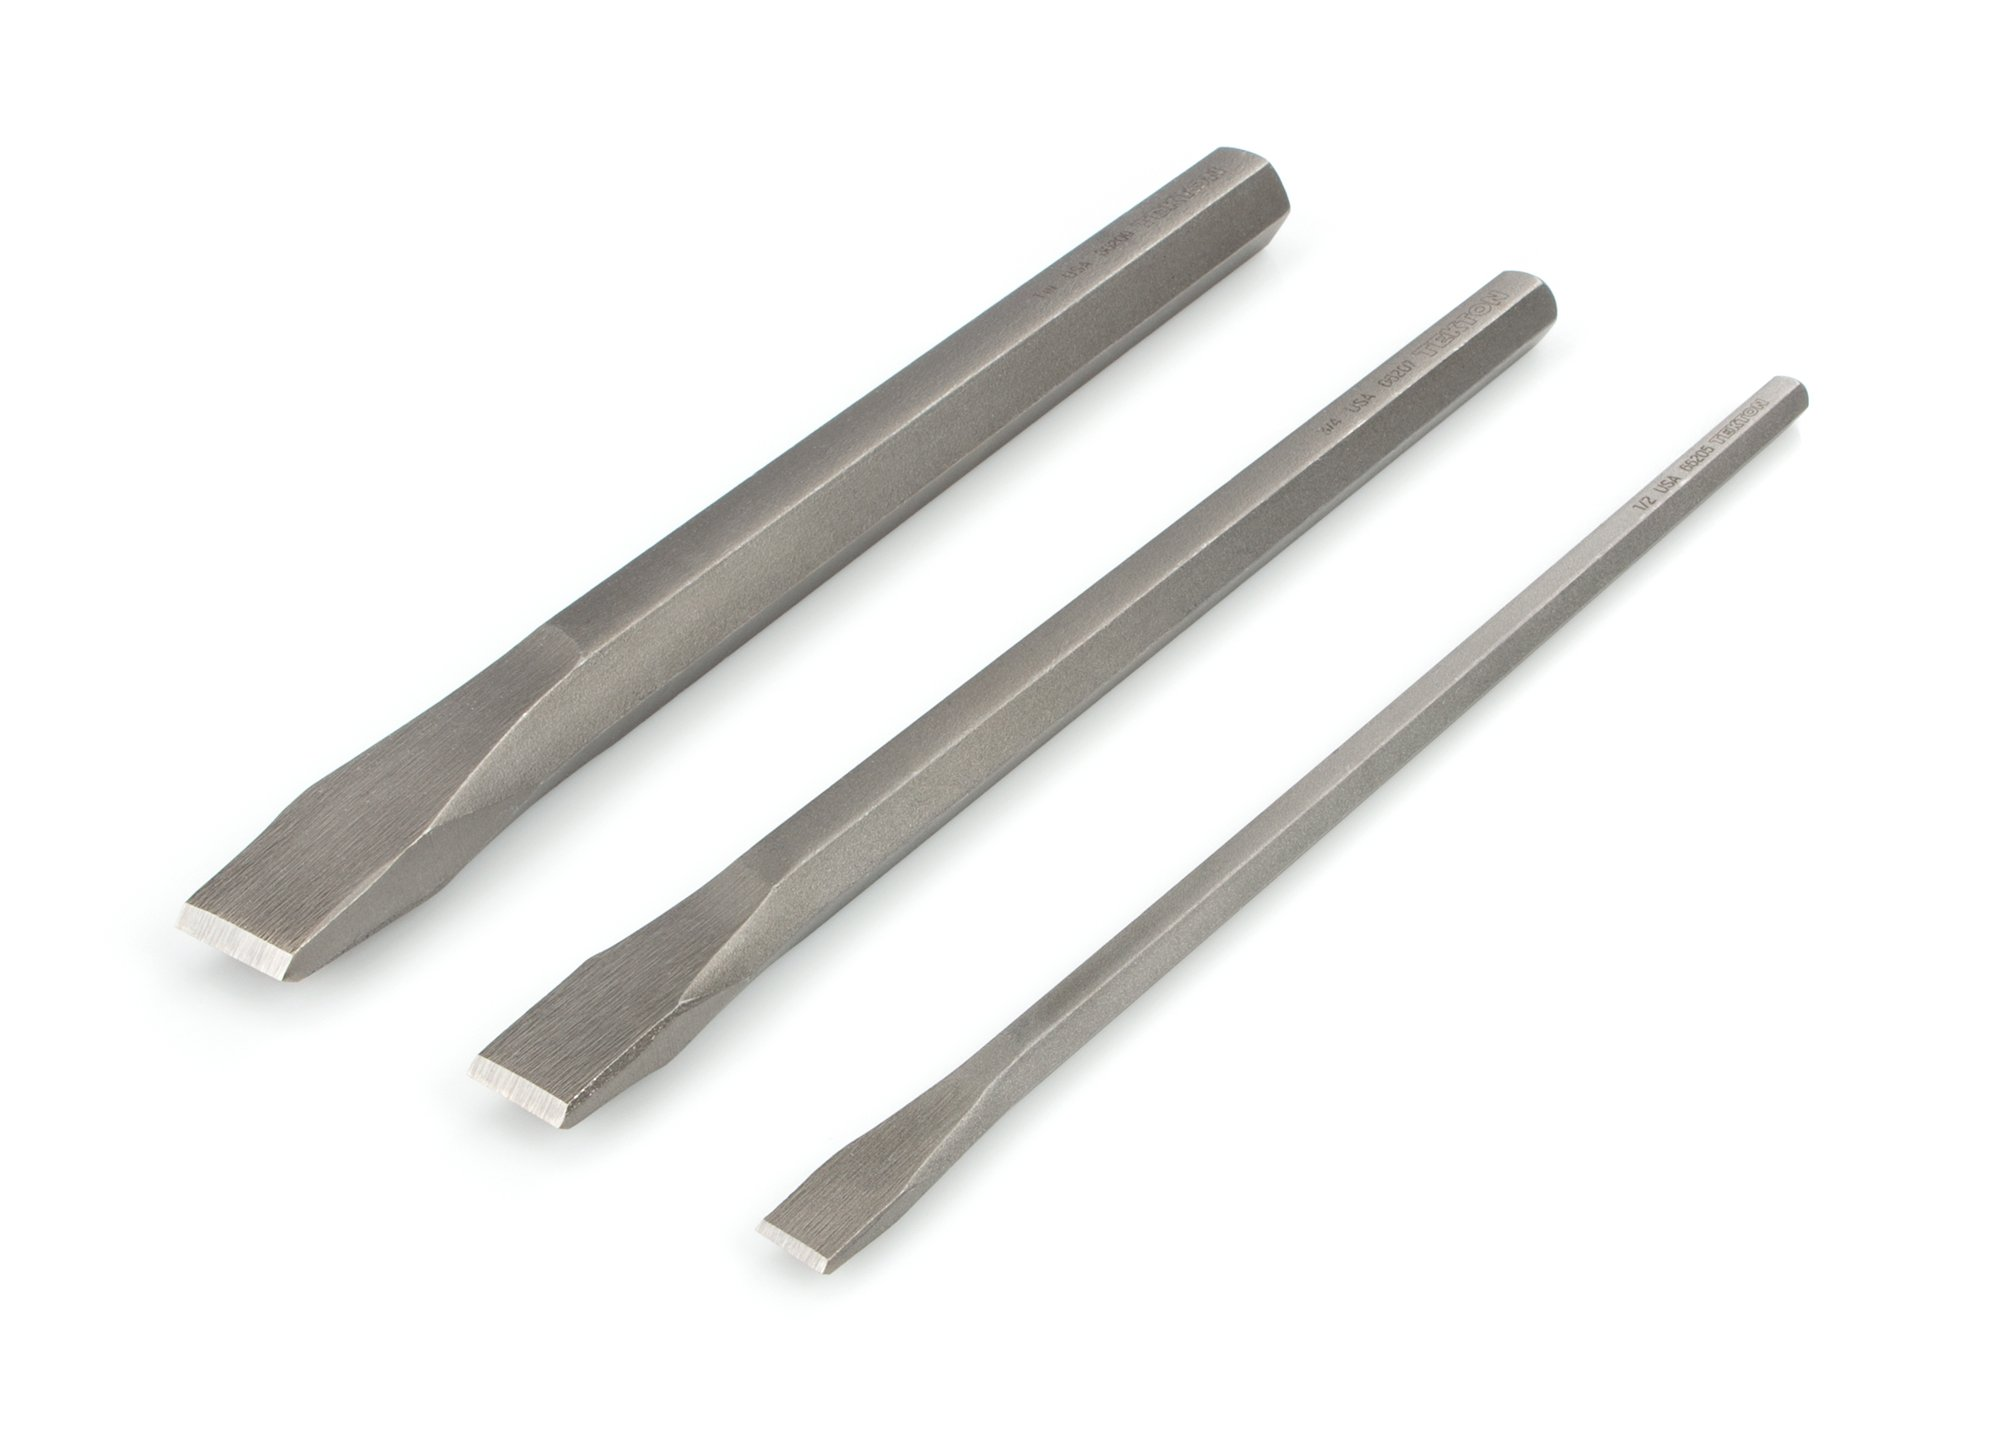 TEKTON Long Cold Chisel Set, 3-Piece (1/2, 3/4, 1 in.)   66506